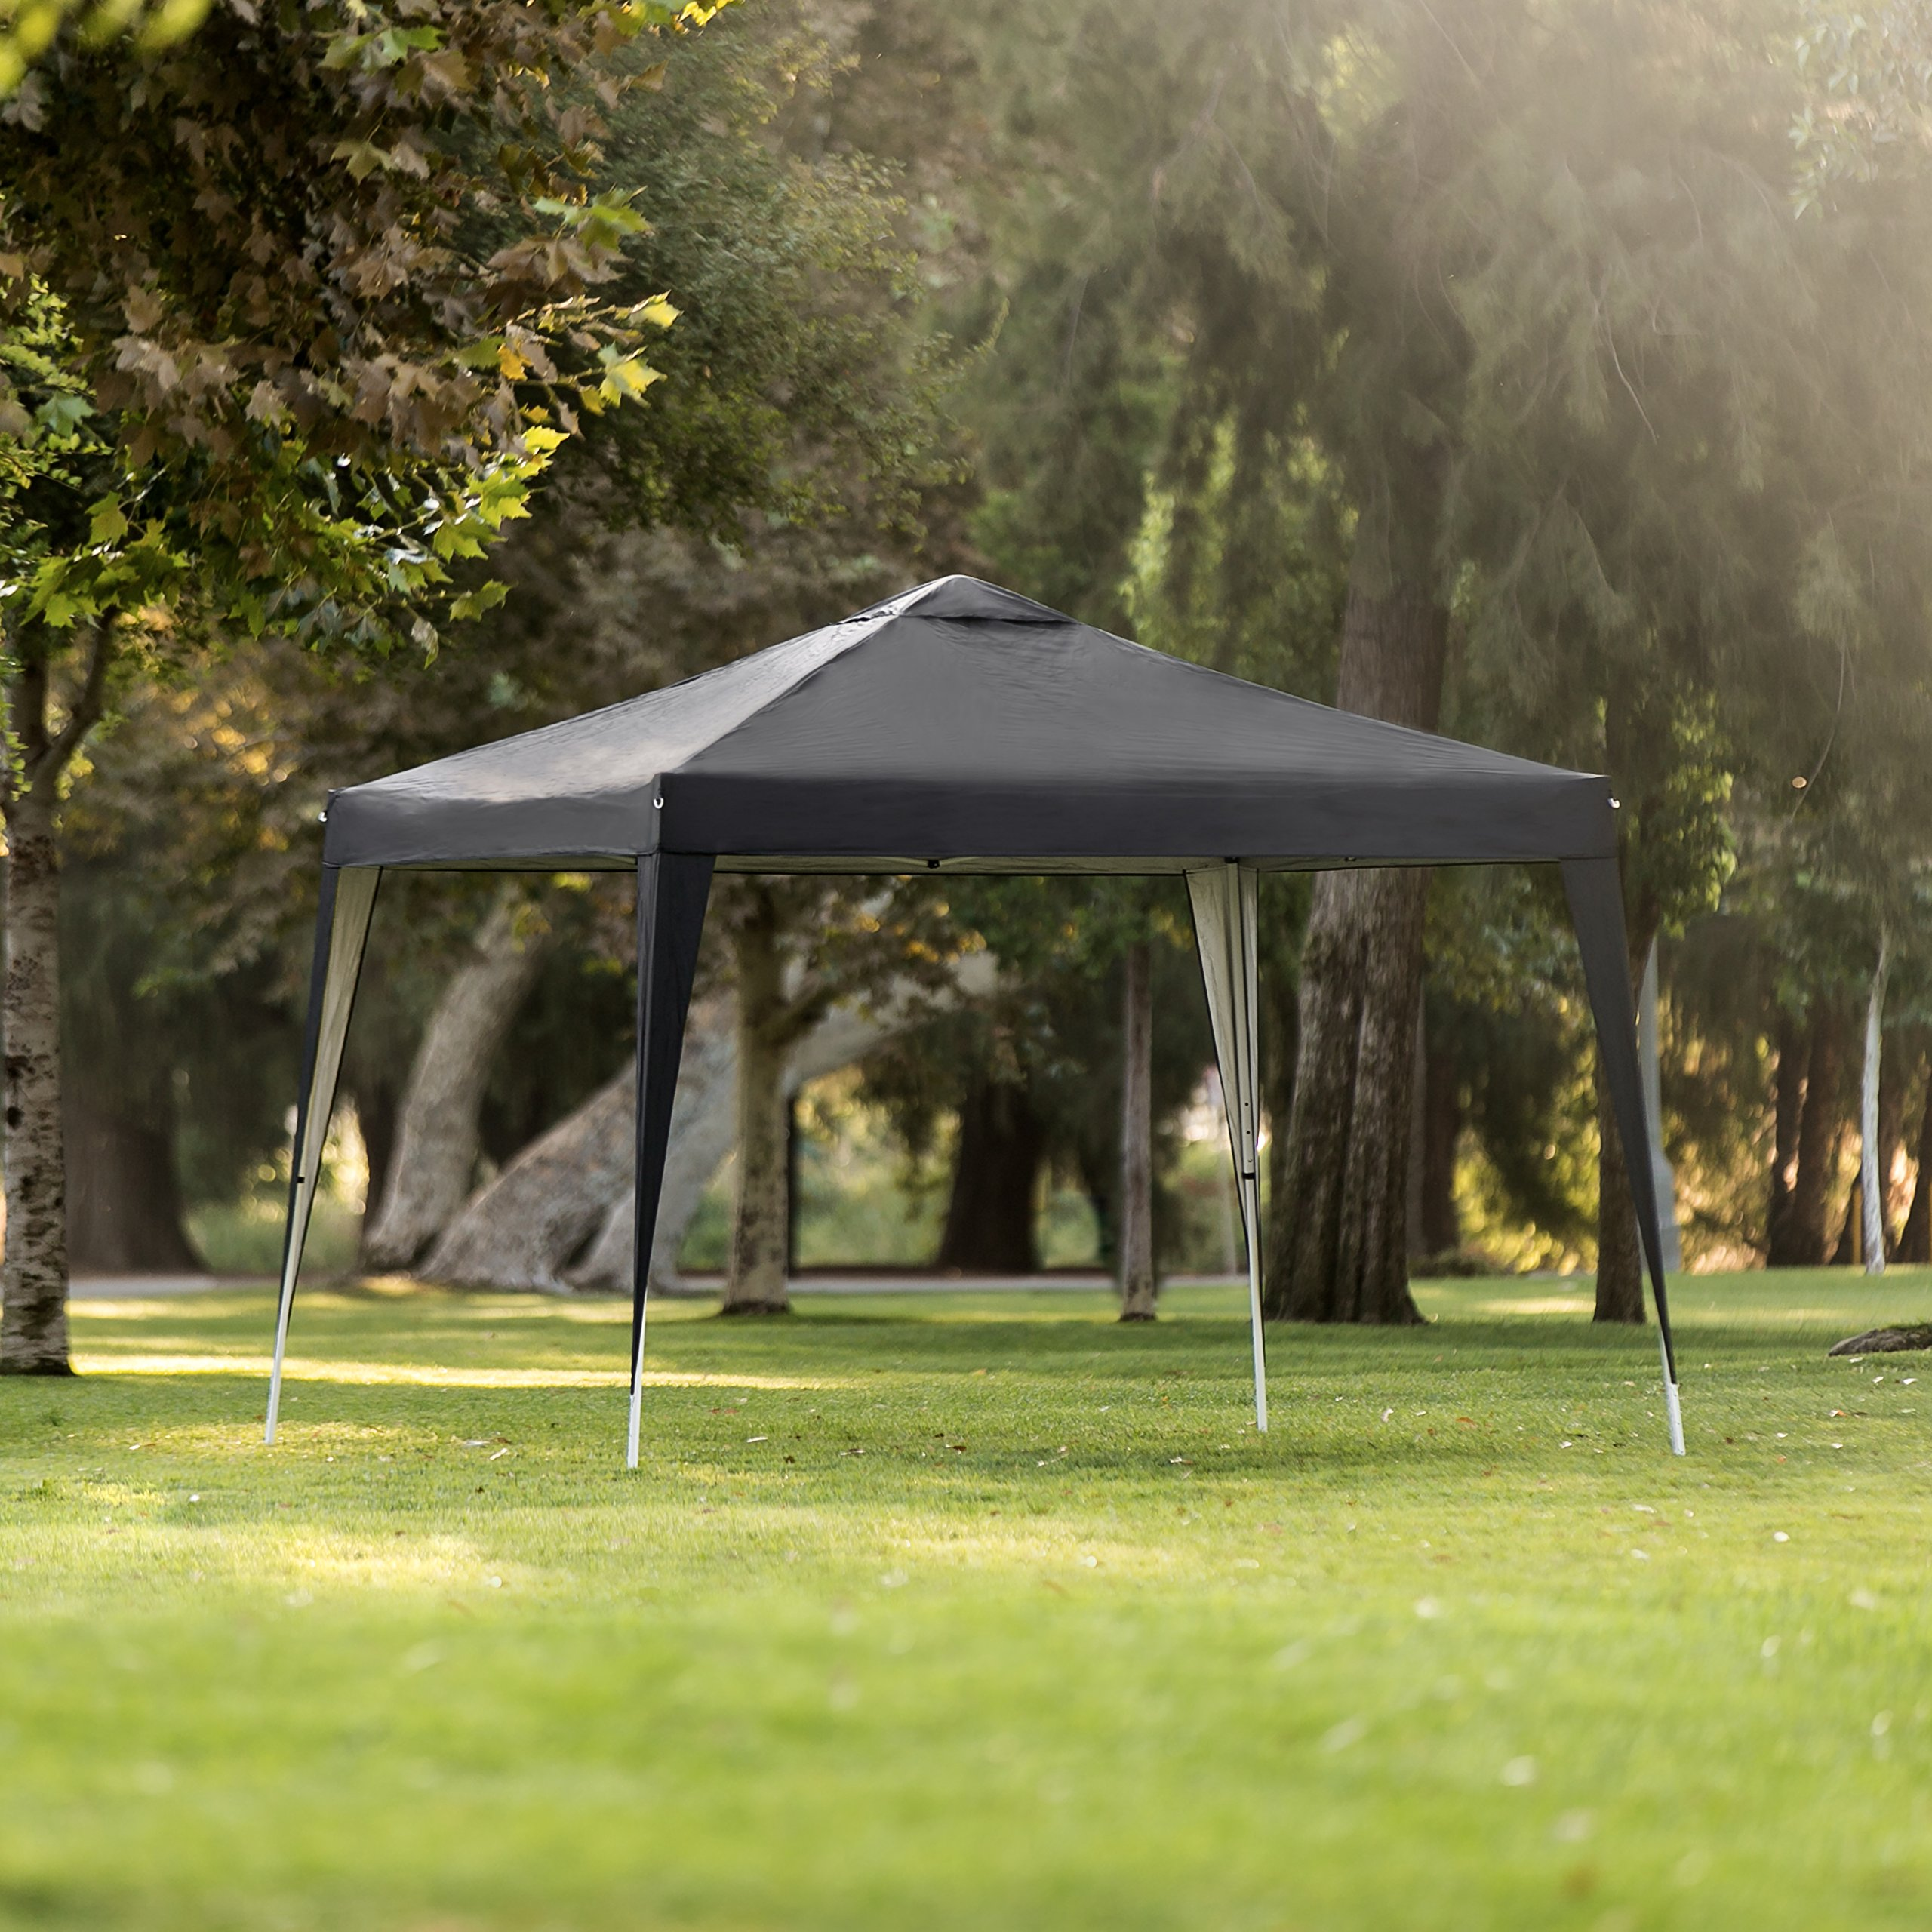 Best Choice Products 10x10ft Outdoor Portable Lightweight Folding Instant Pop Up Gazebo Canopy Shade Tent w/Adjustable Height, Wind Vent, Carrying Bag – Black